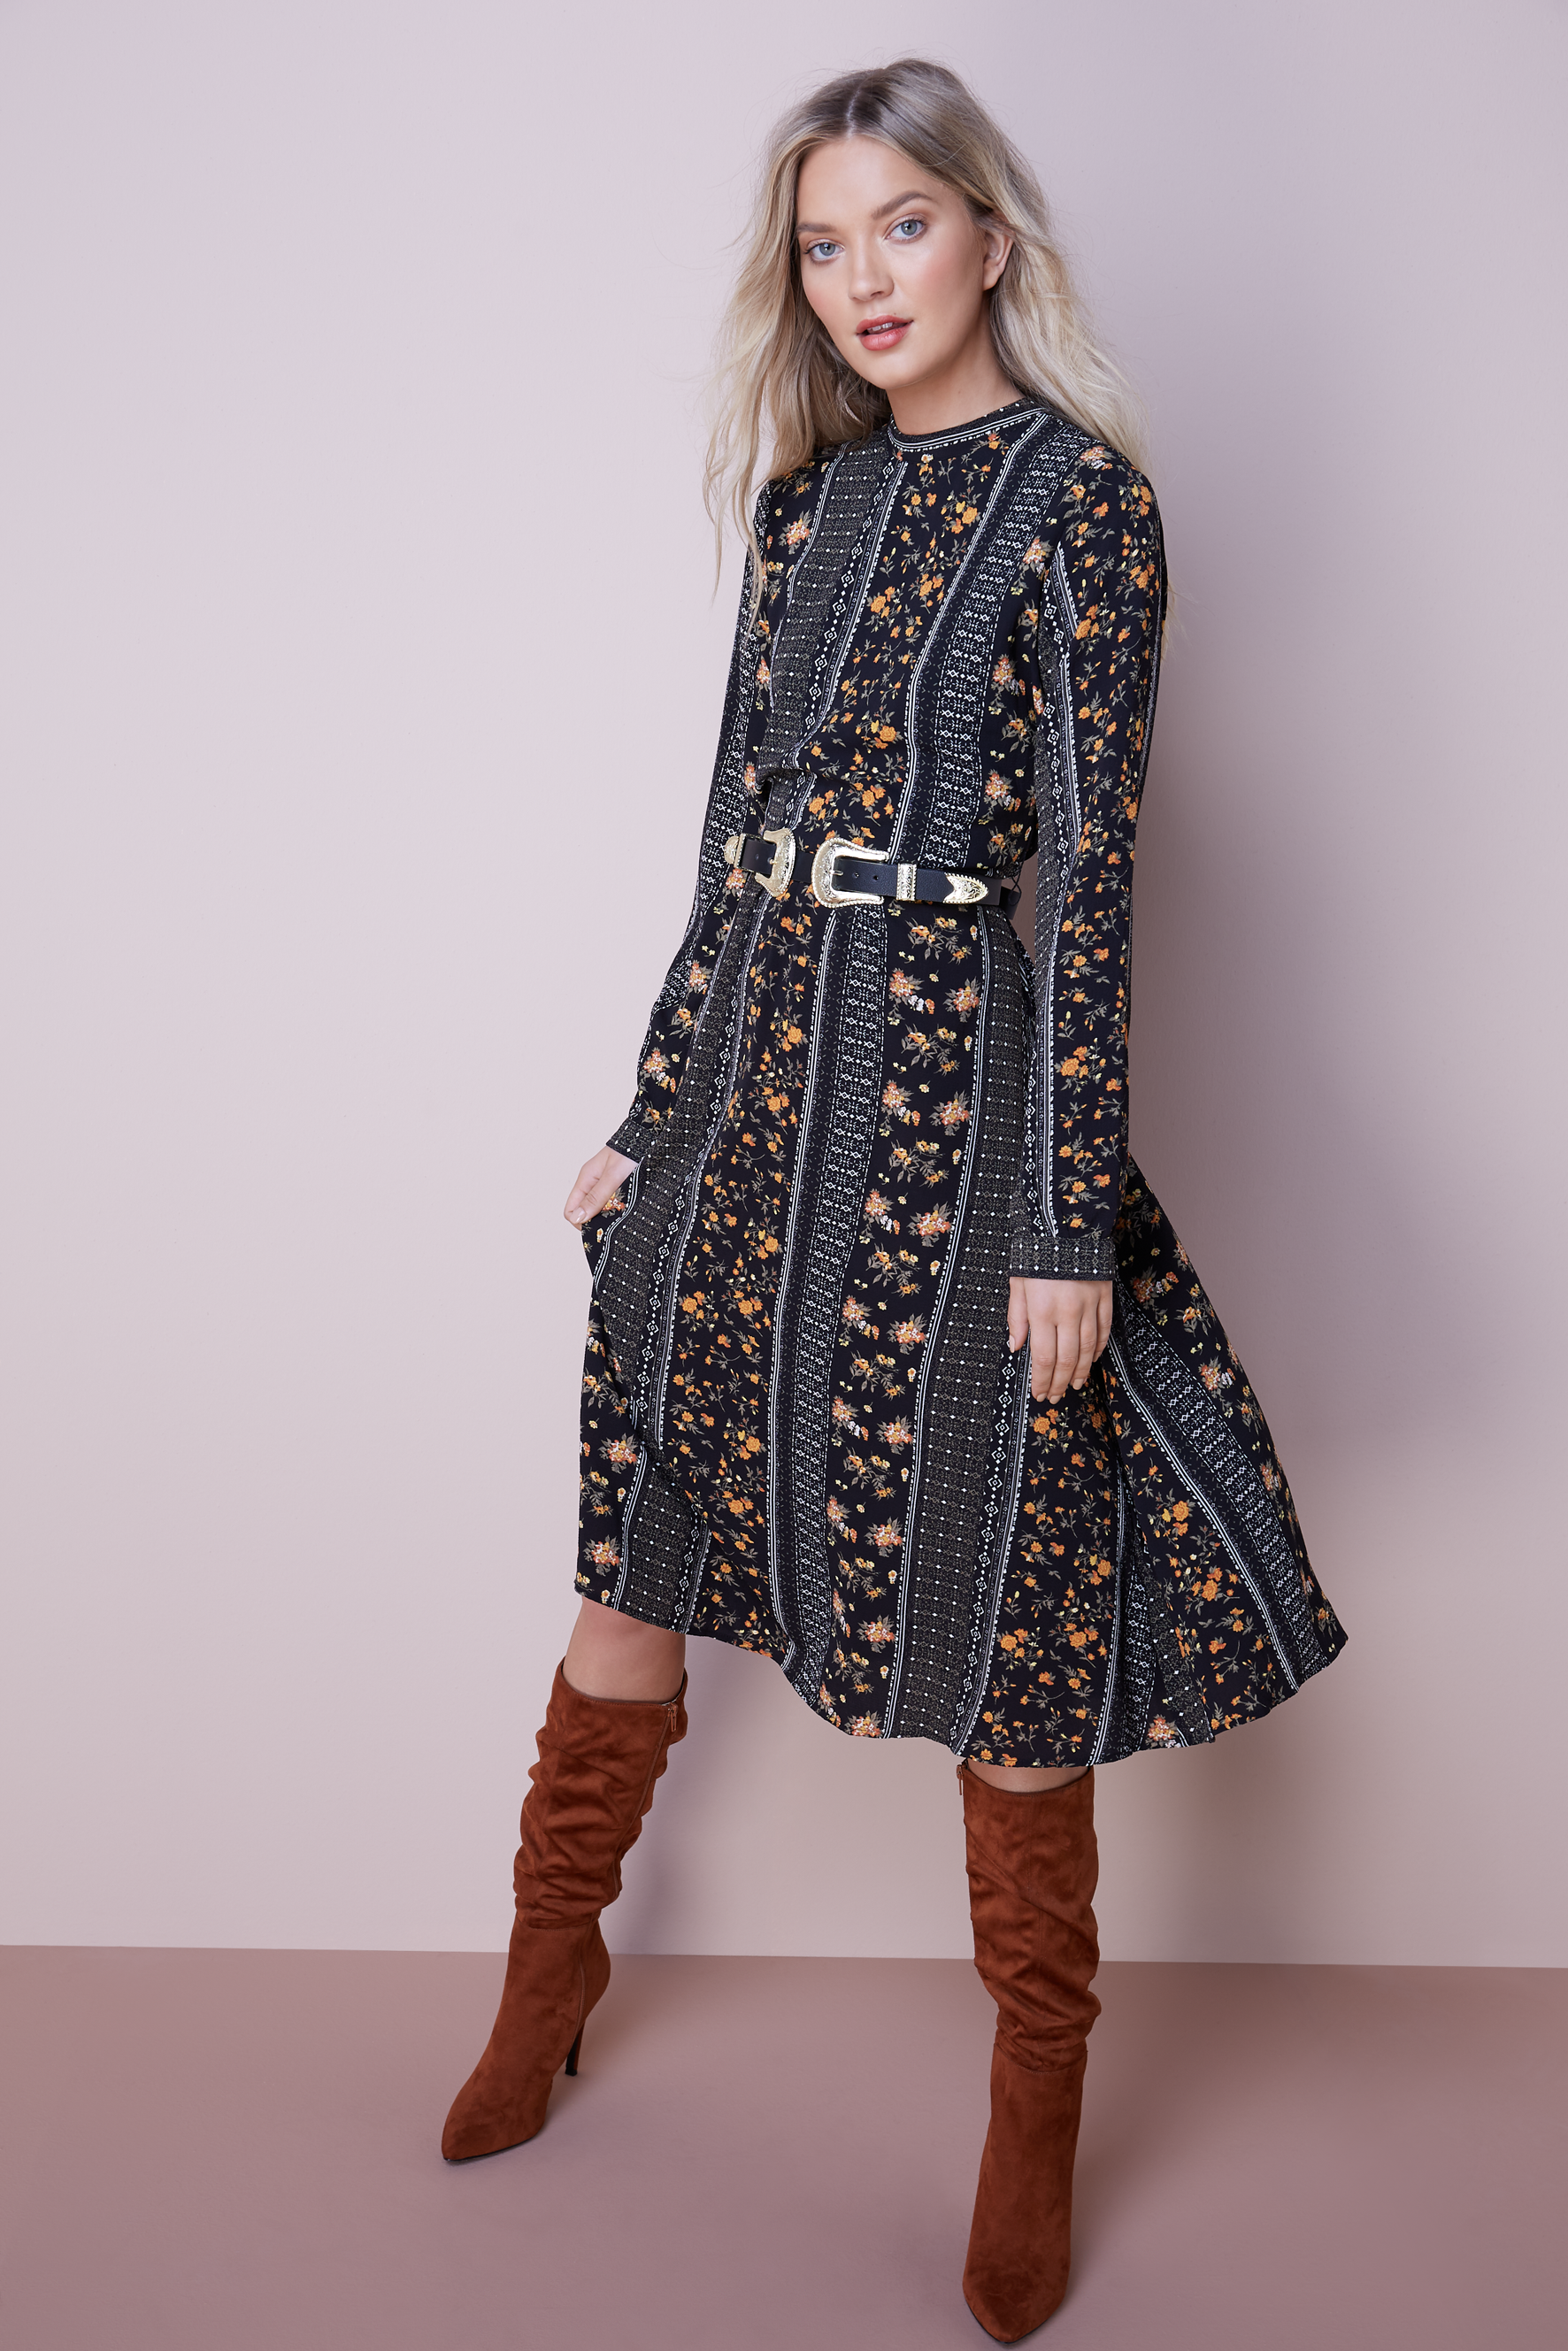 differently official store beauty Dresses   All Styles & Sizes   Littlewoods Ireland in 2019 ...